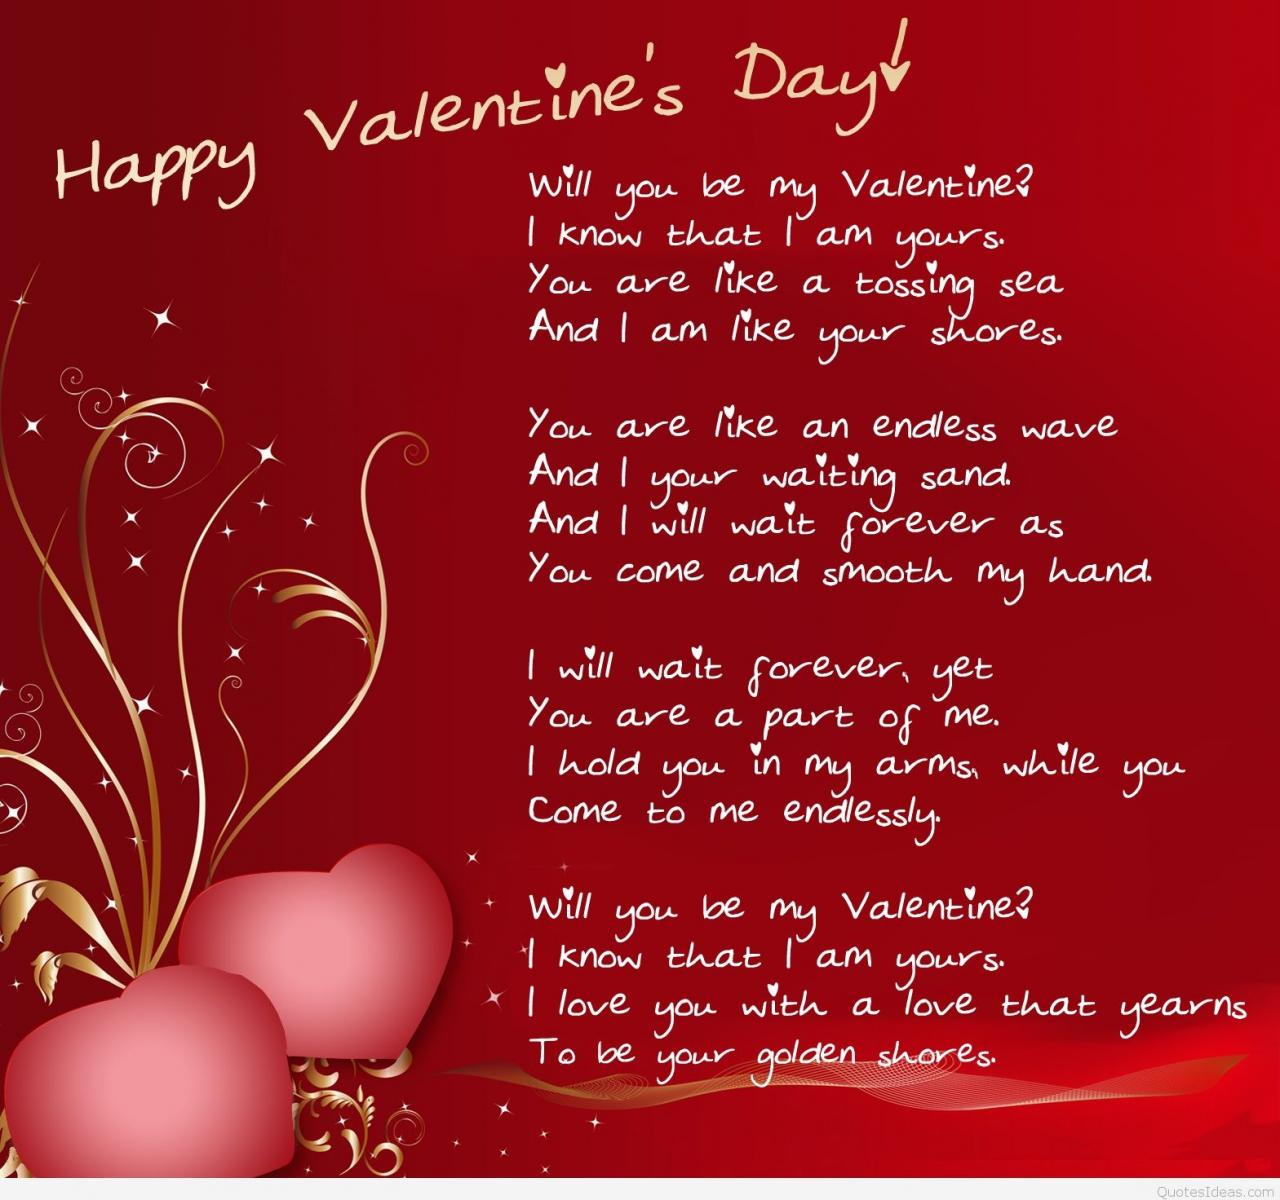 Oh And Cute Valentines Quotes Are The Share The Love Series From The What About For Cake Pops Happy Valentines Day To All My